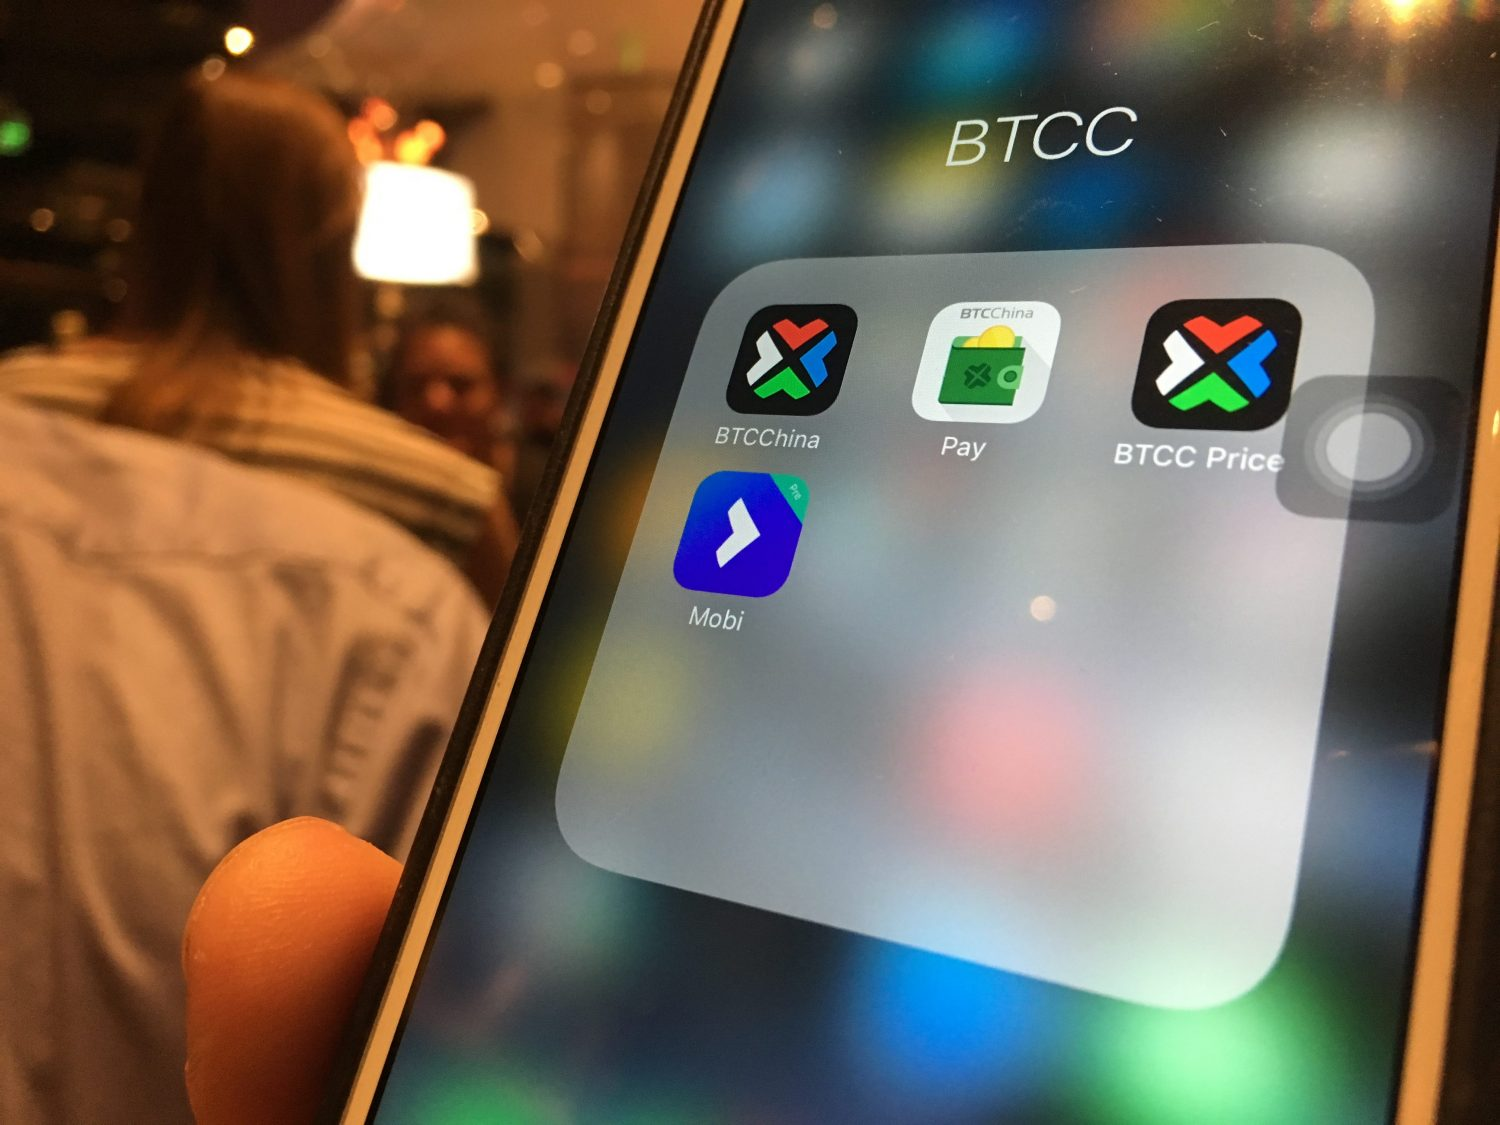 BTCC Previews New Mobile Bitcoin Wallet 'Mobi'